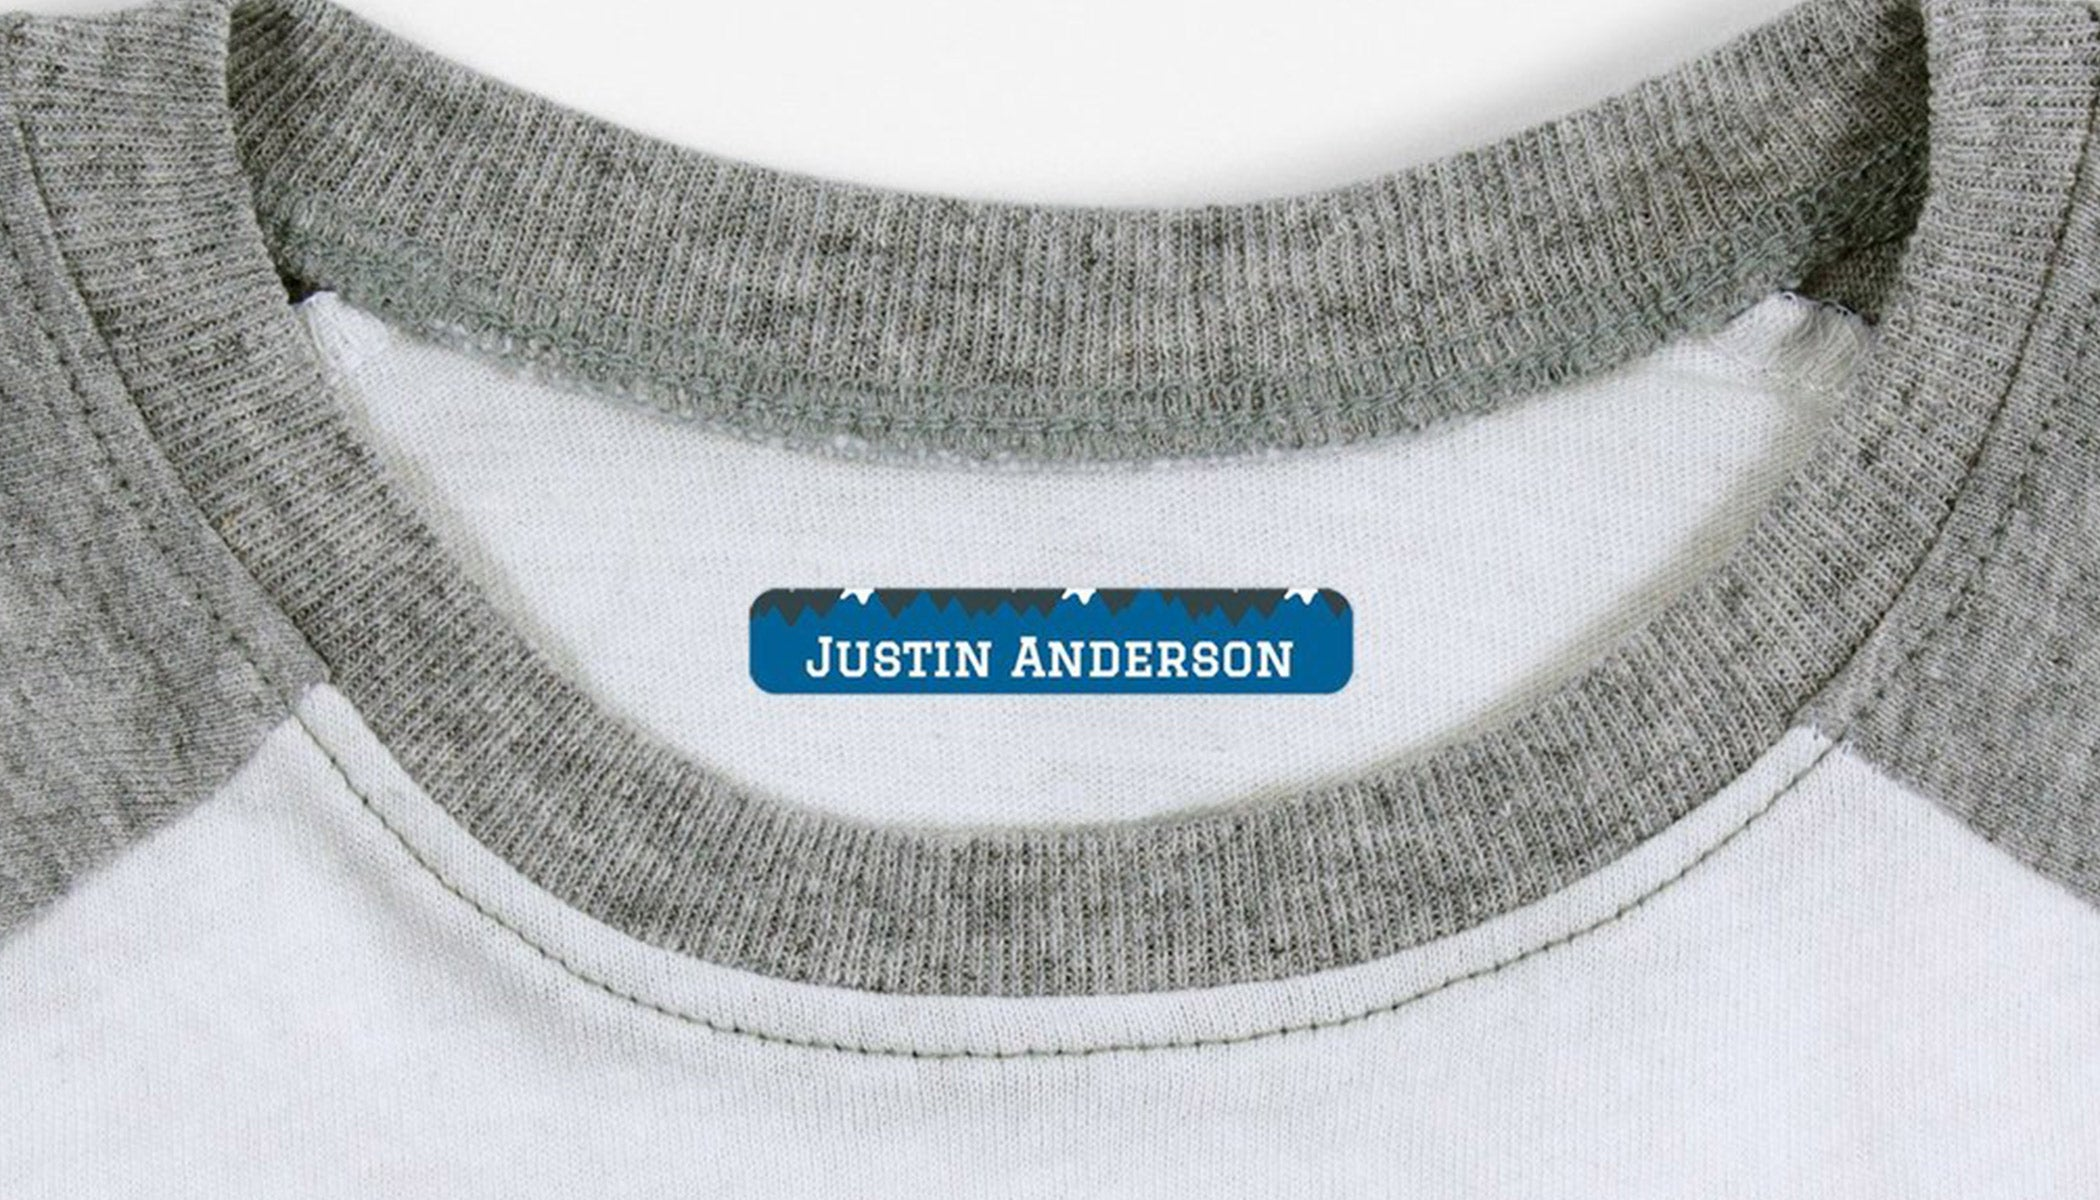 How to apply personalized Iron-On Labels with name Bubbles.